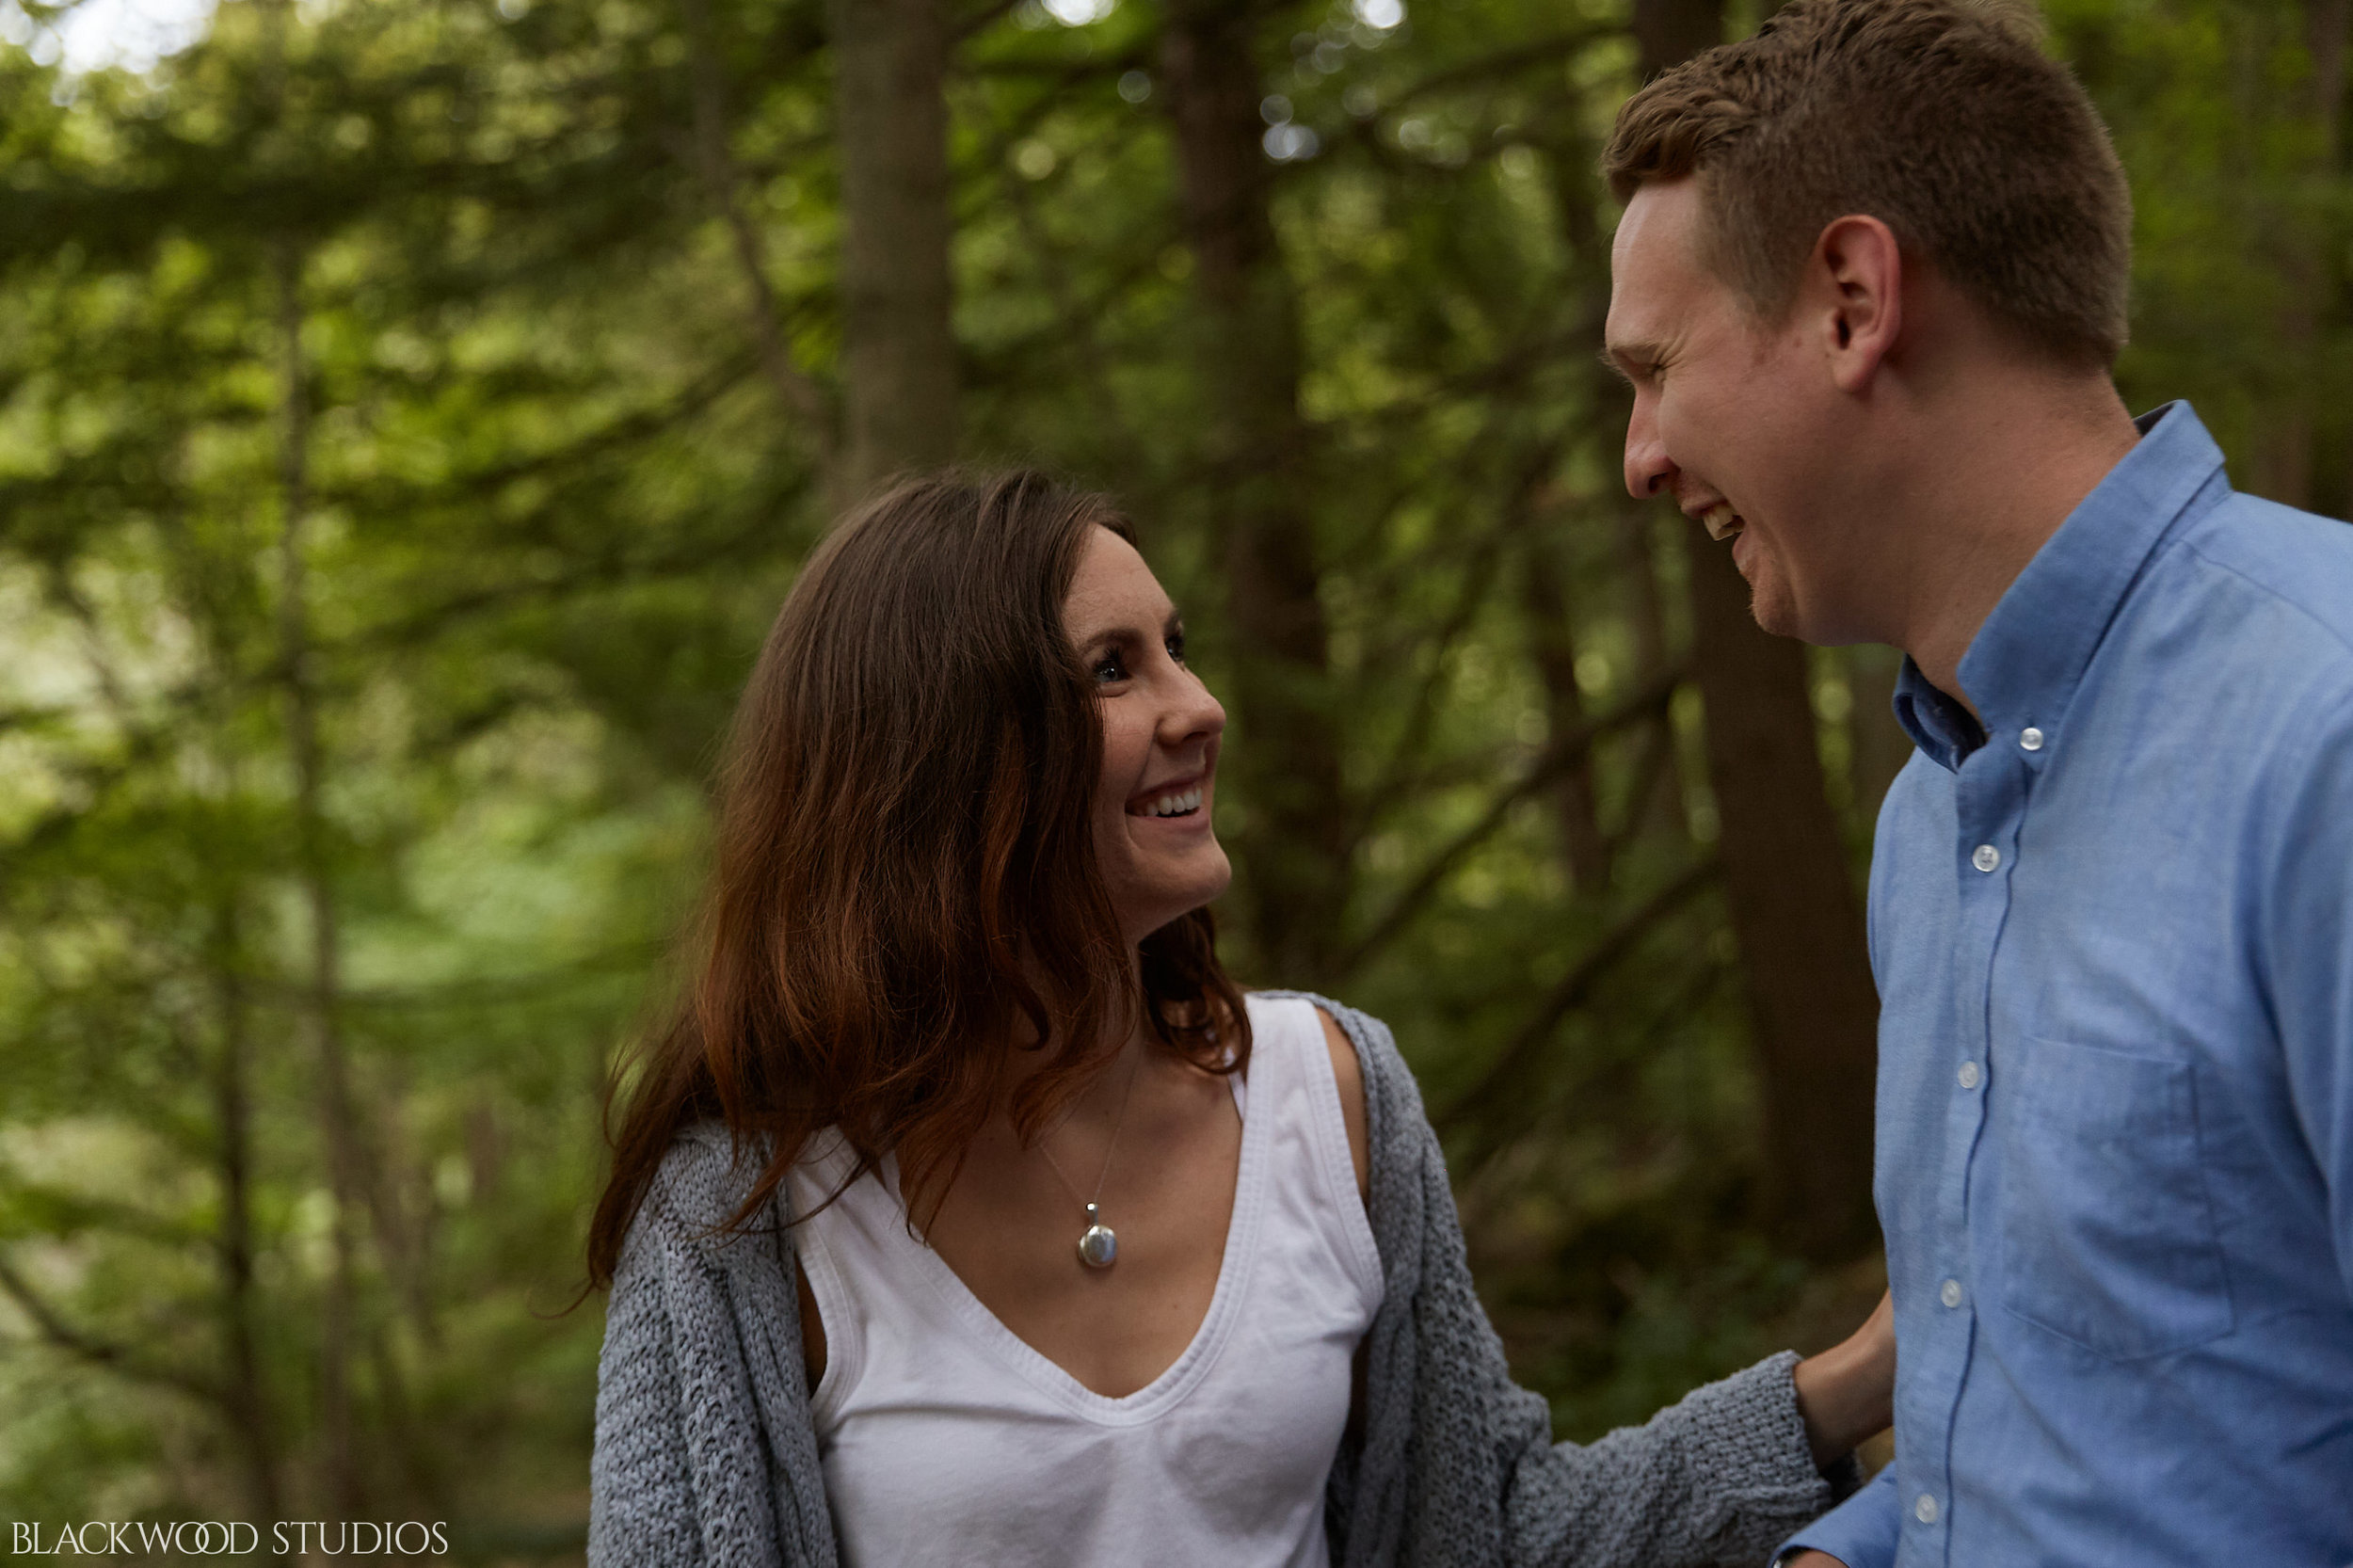 Blackwood-Studios-photography-20180922-184539-Jeff-and-Raven-Engagement-0558-Balls-Falls-Conservation-Area-Lincoln-Niagara-Ontario.jpg